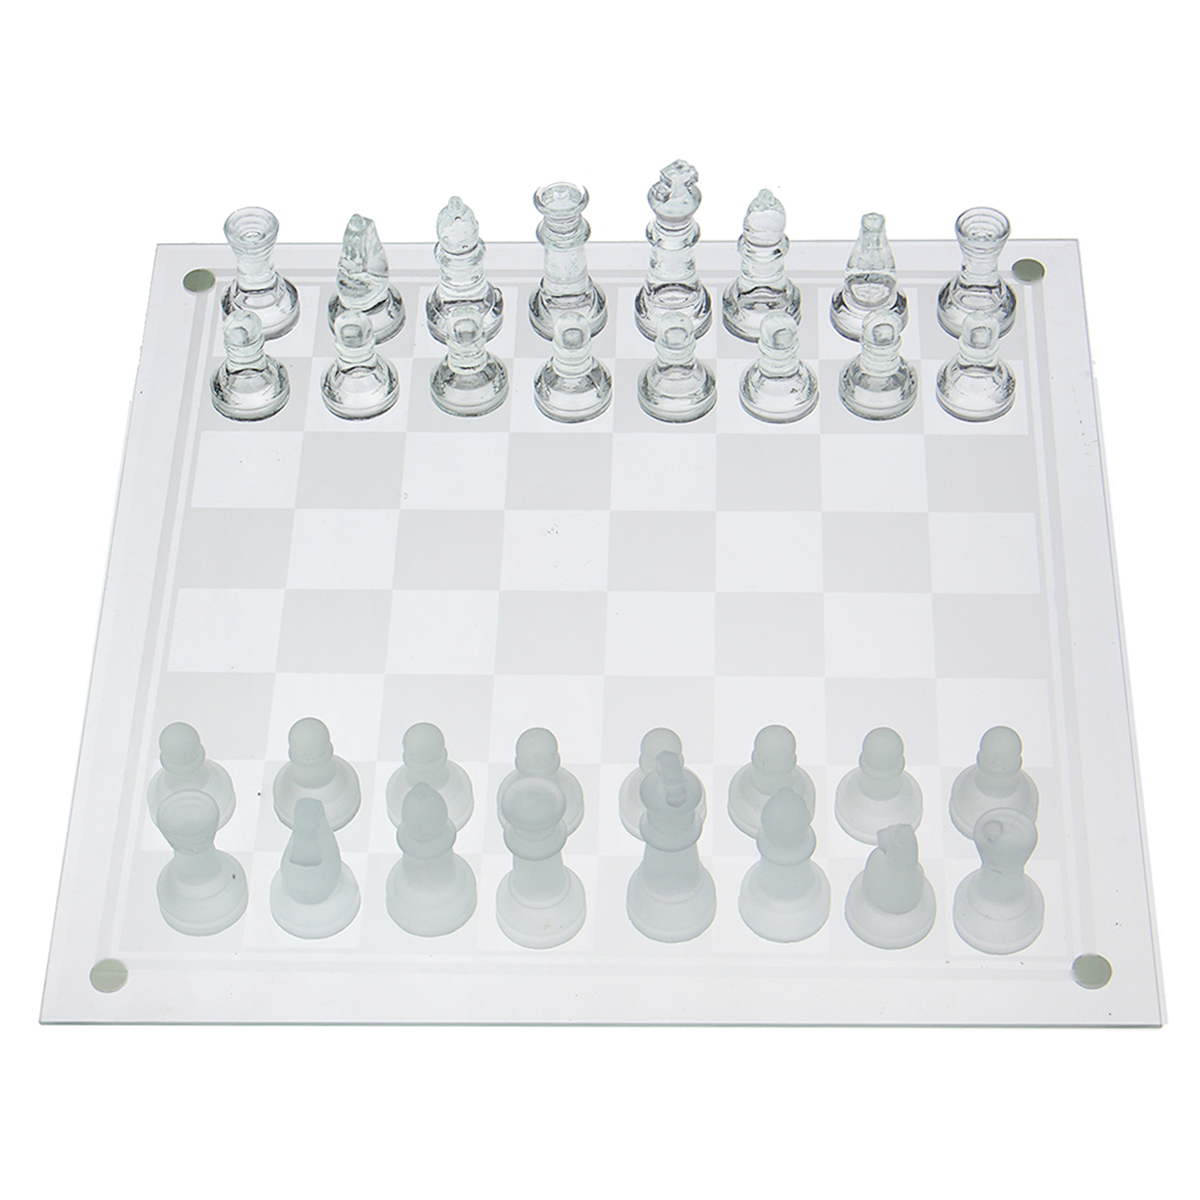 Classic Glass Chess Set Deluxe Checkers Game Strategy Board Frosted Pieces International Word Chess Game Entertainment strategy